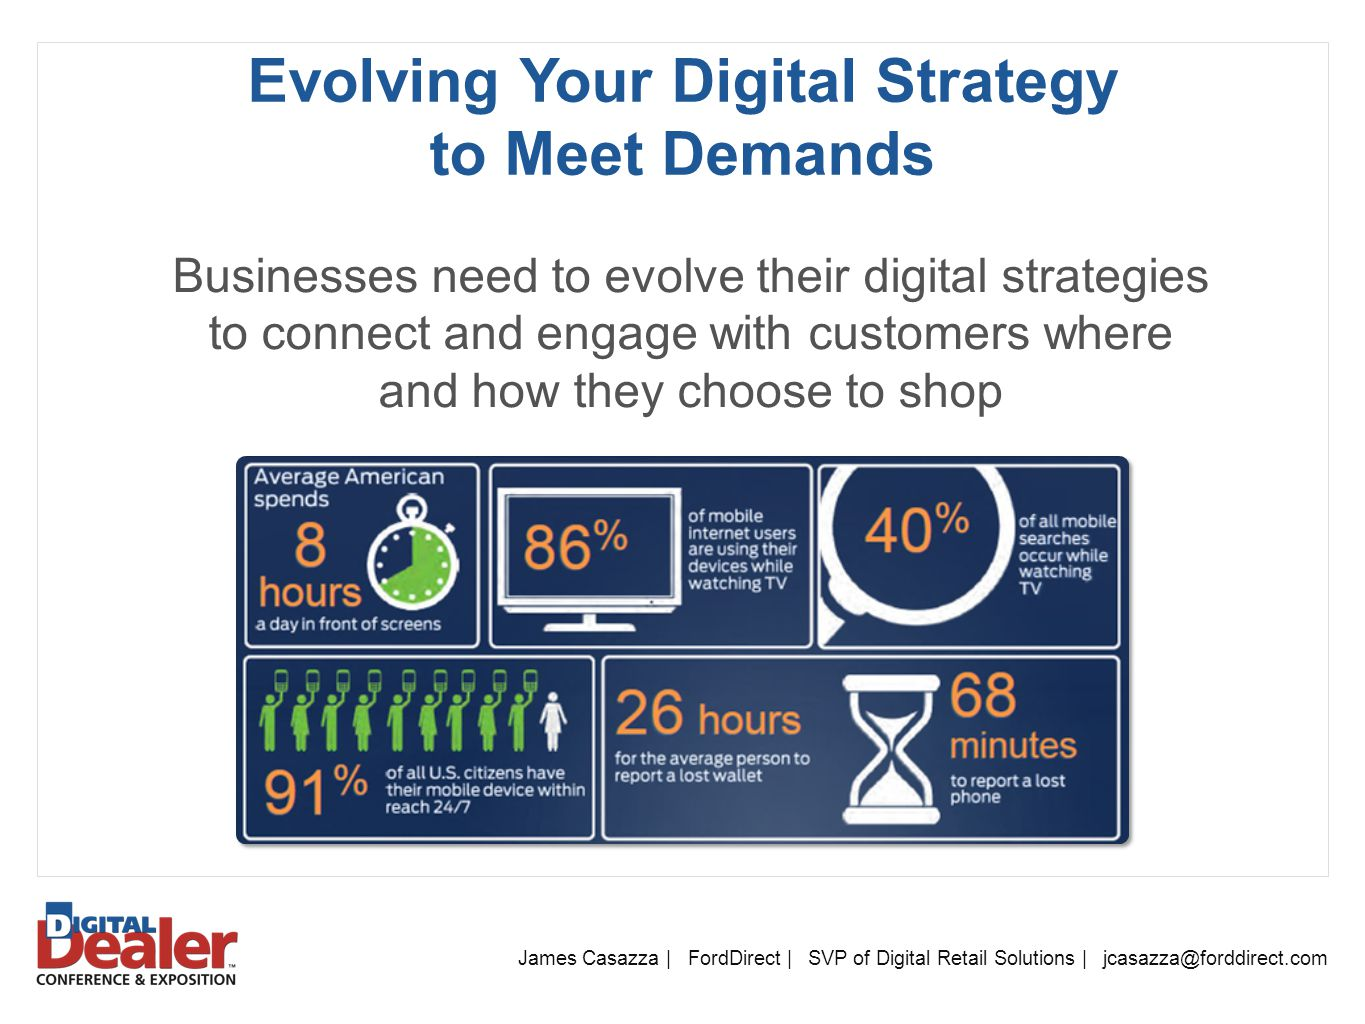 Evolving Your Digital Strategy to Meet Demands